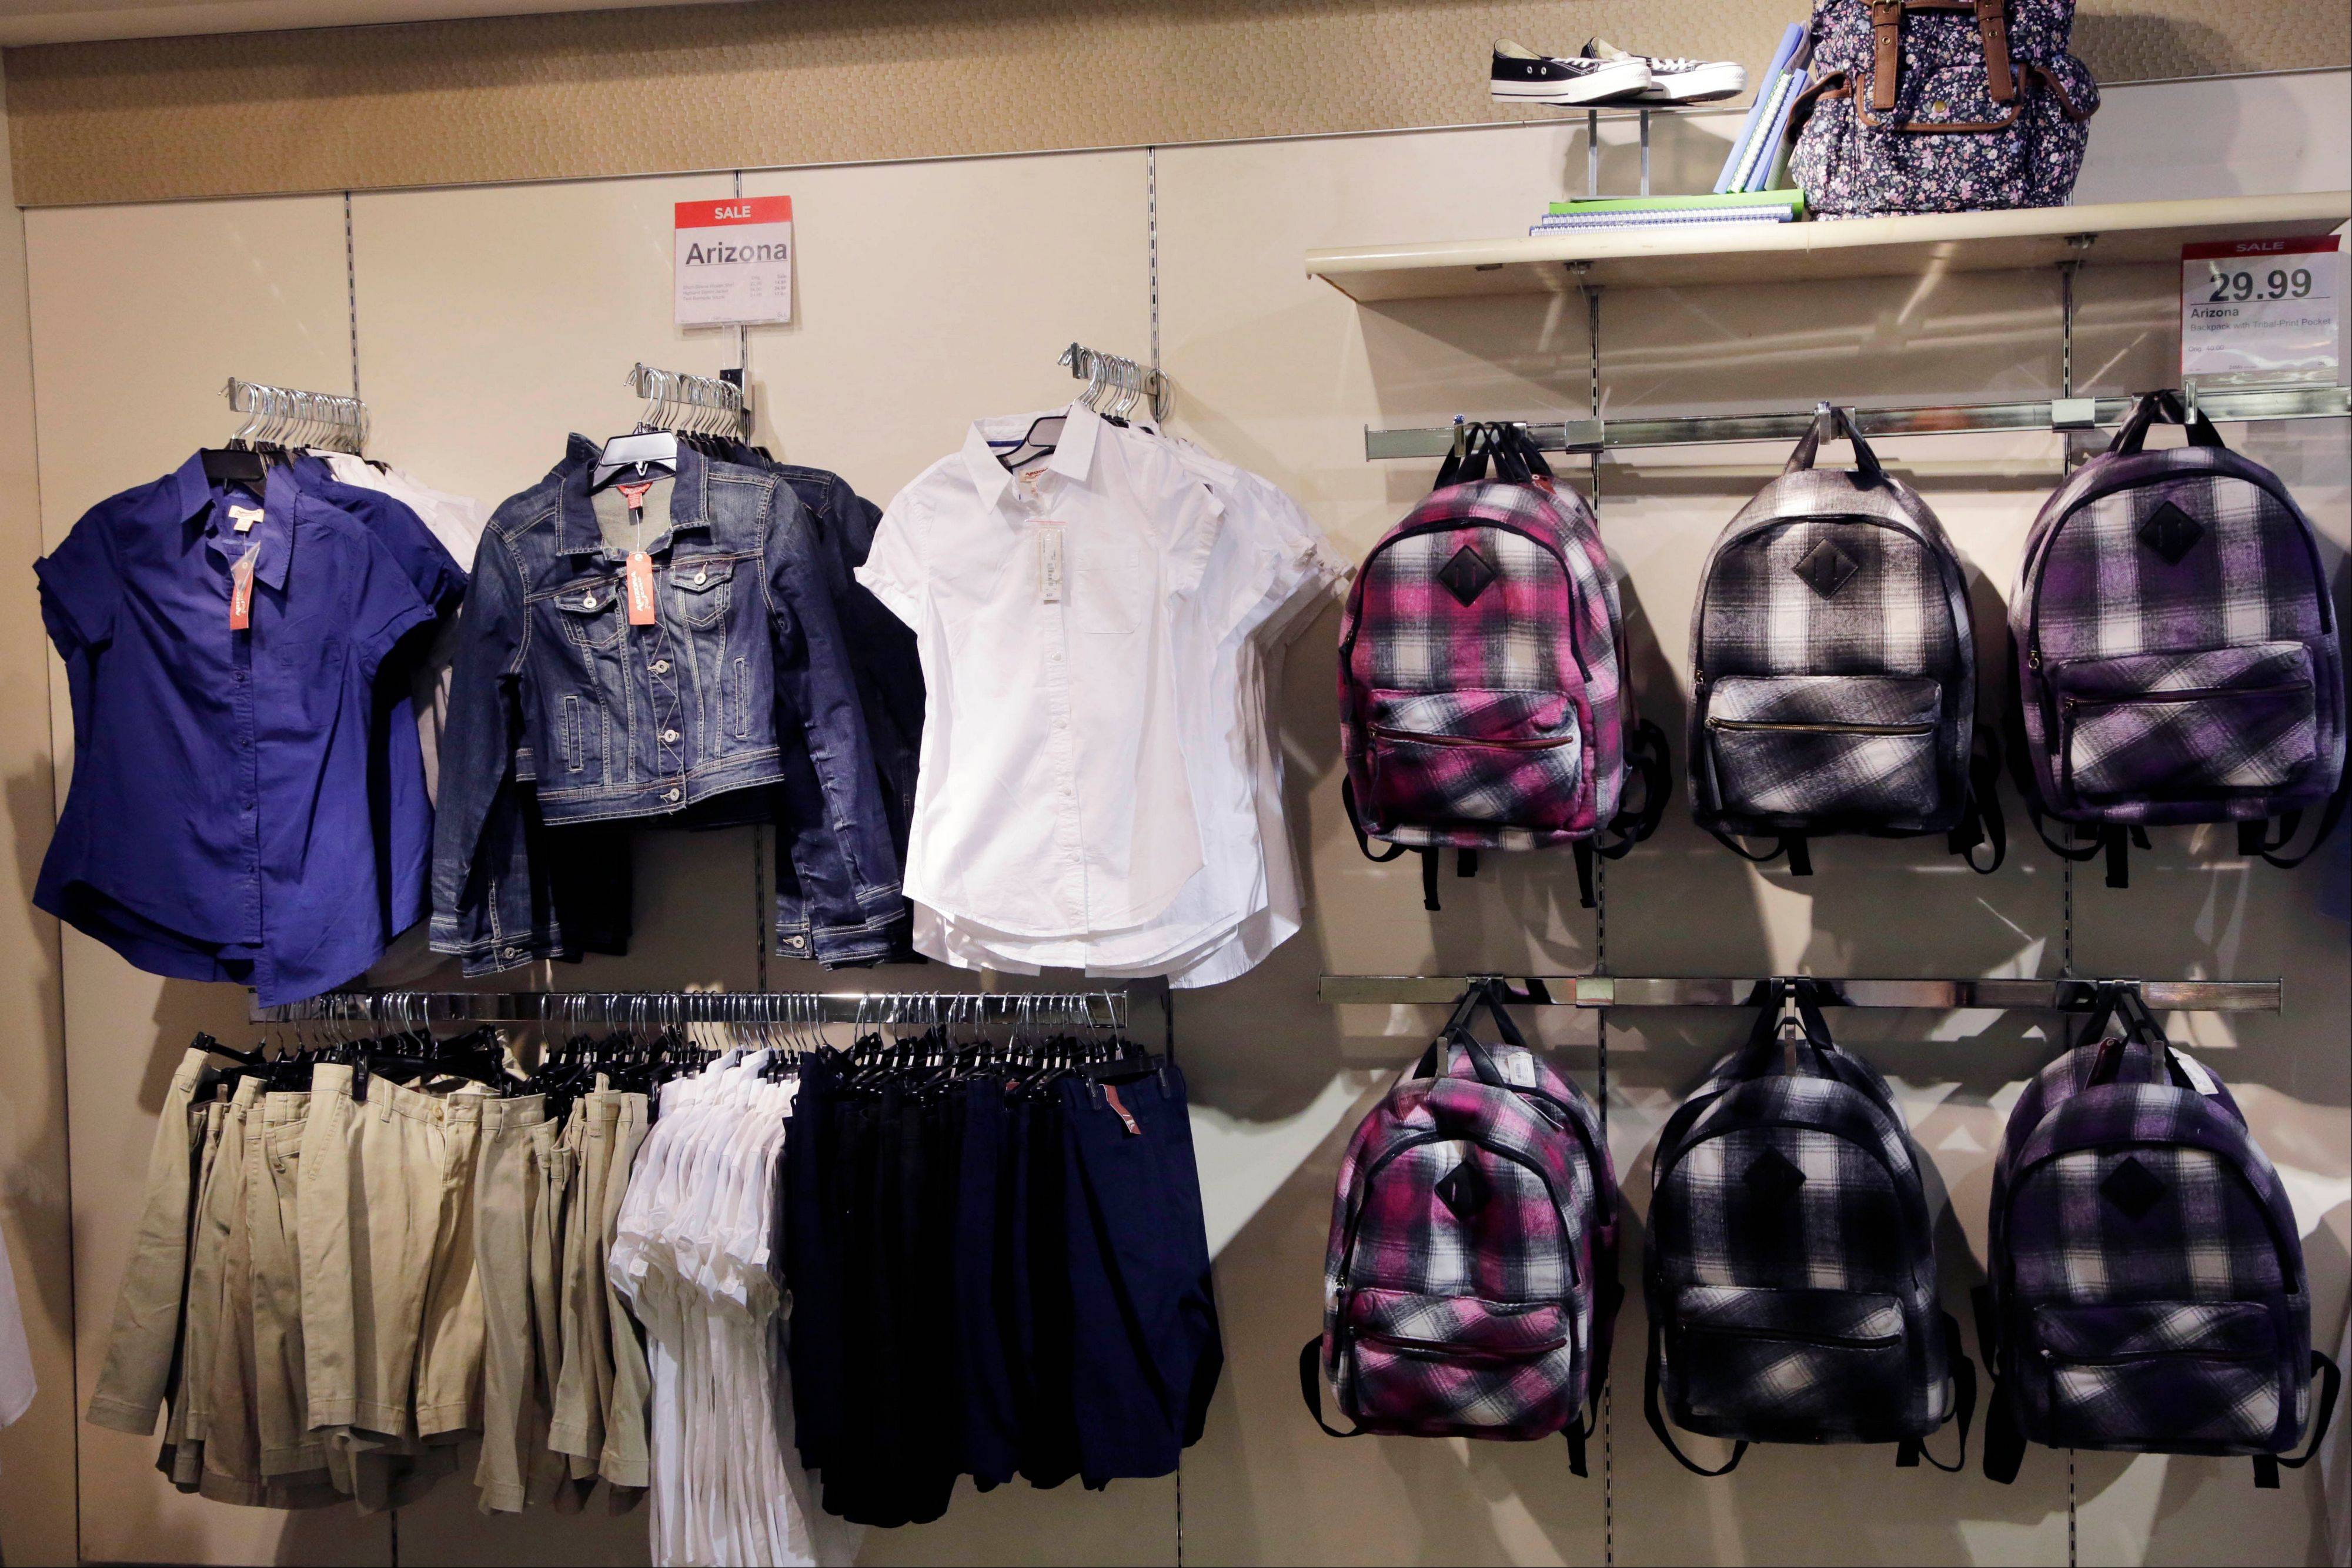 School uniforms by Arizona at JC Penney in New York. U.S. businesses restocked their shelves and warehouses in July at the fastest pace since January as their sales rose, a hopeful sign for economic growth.